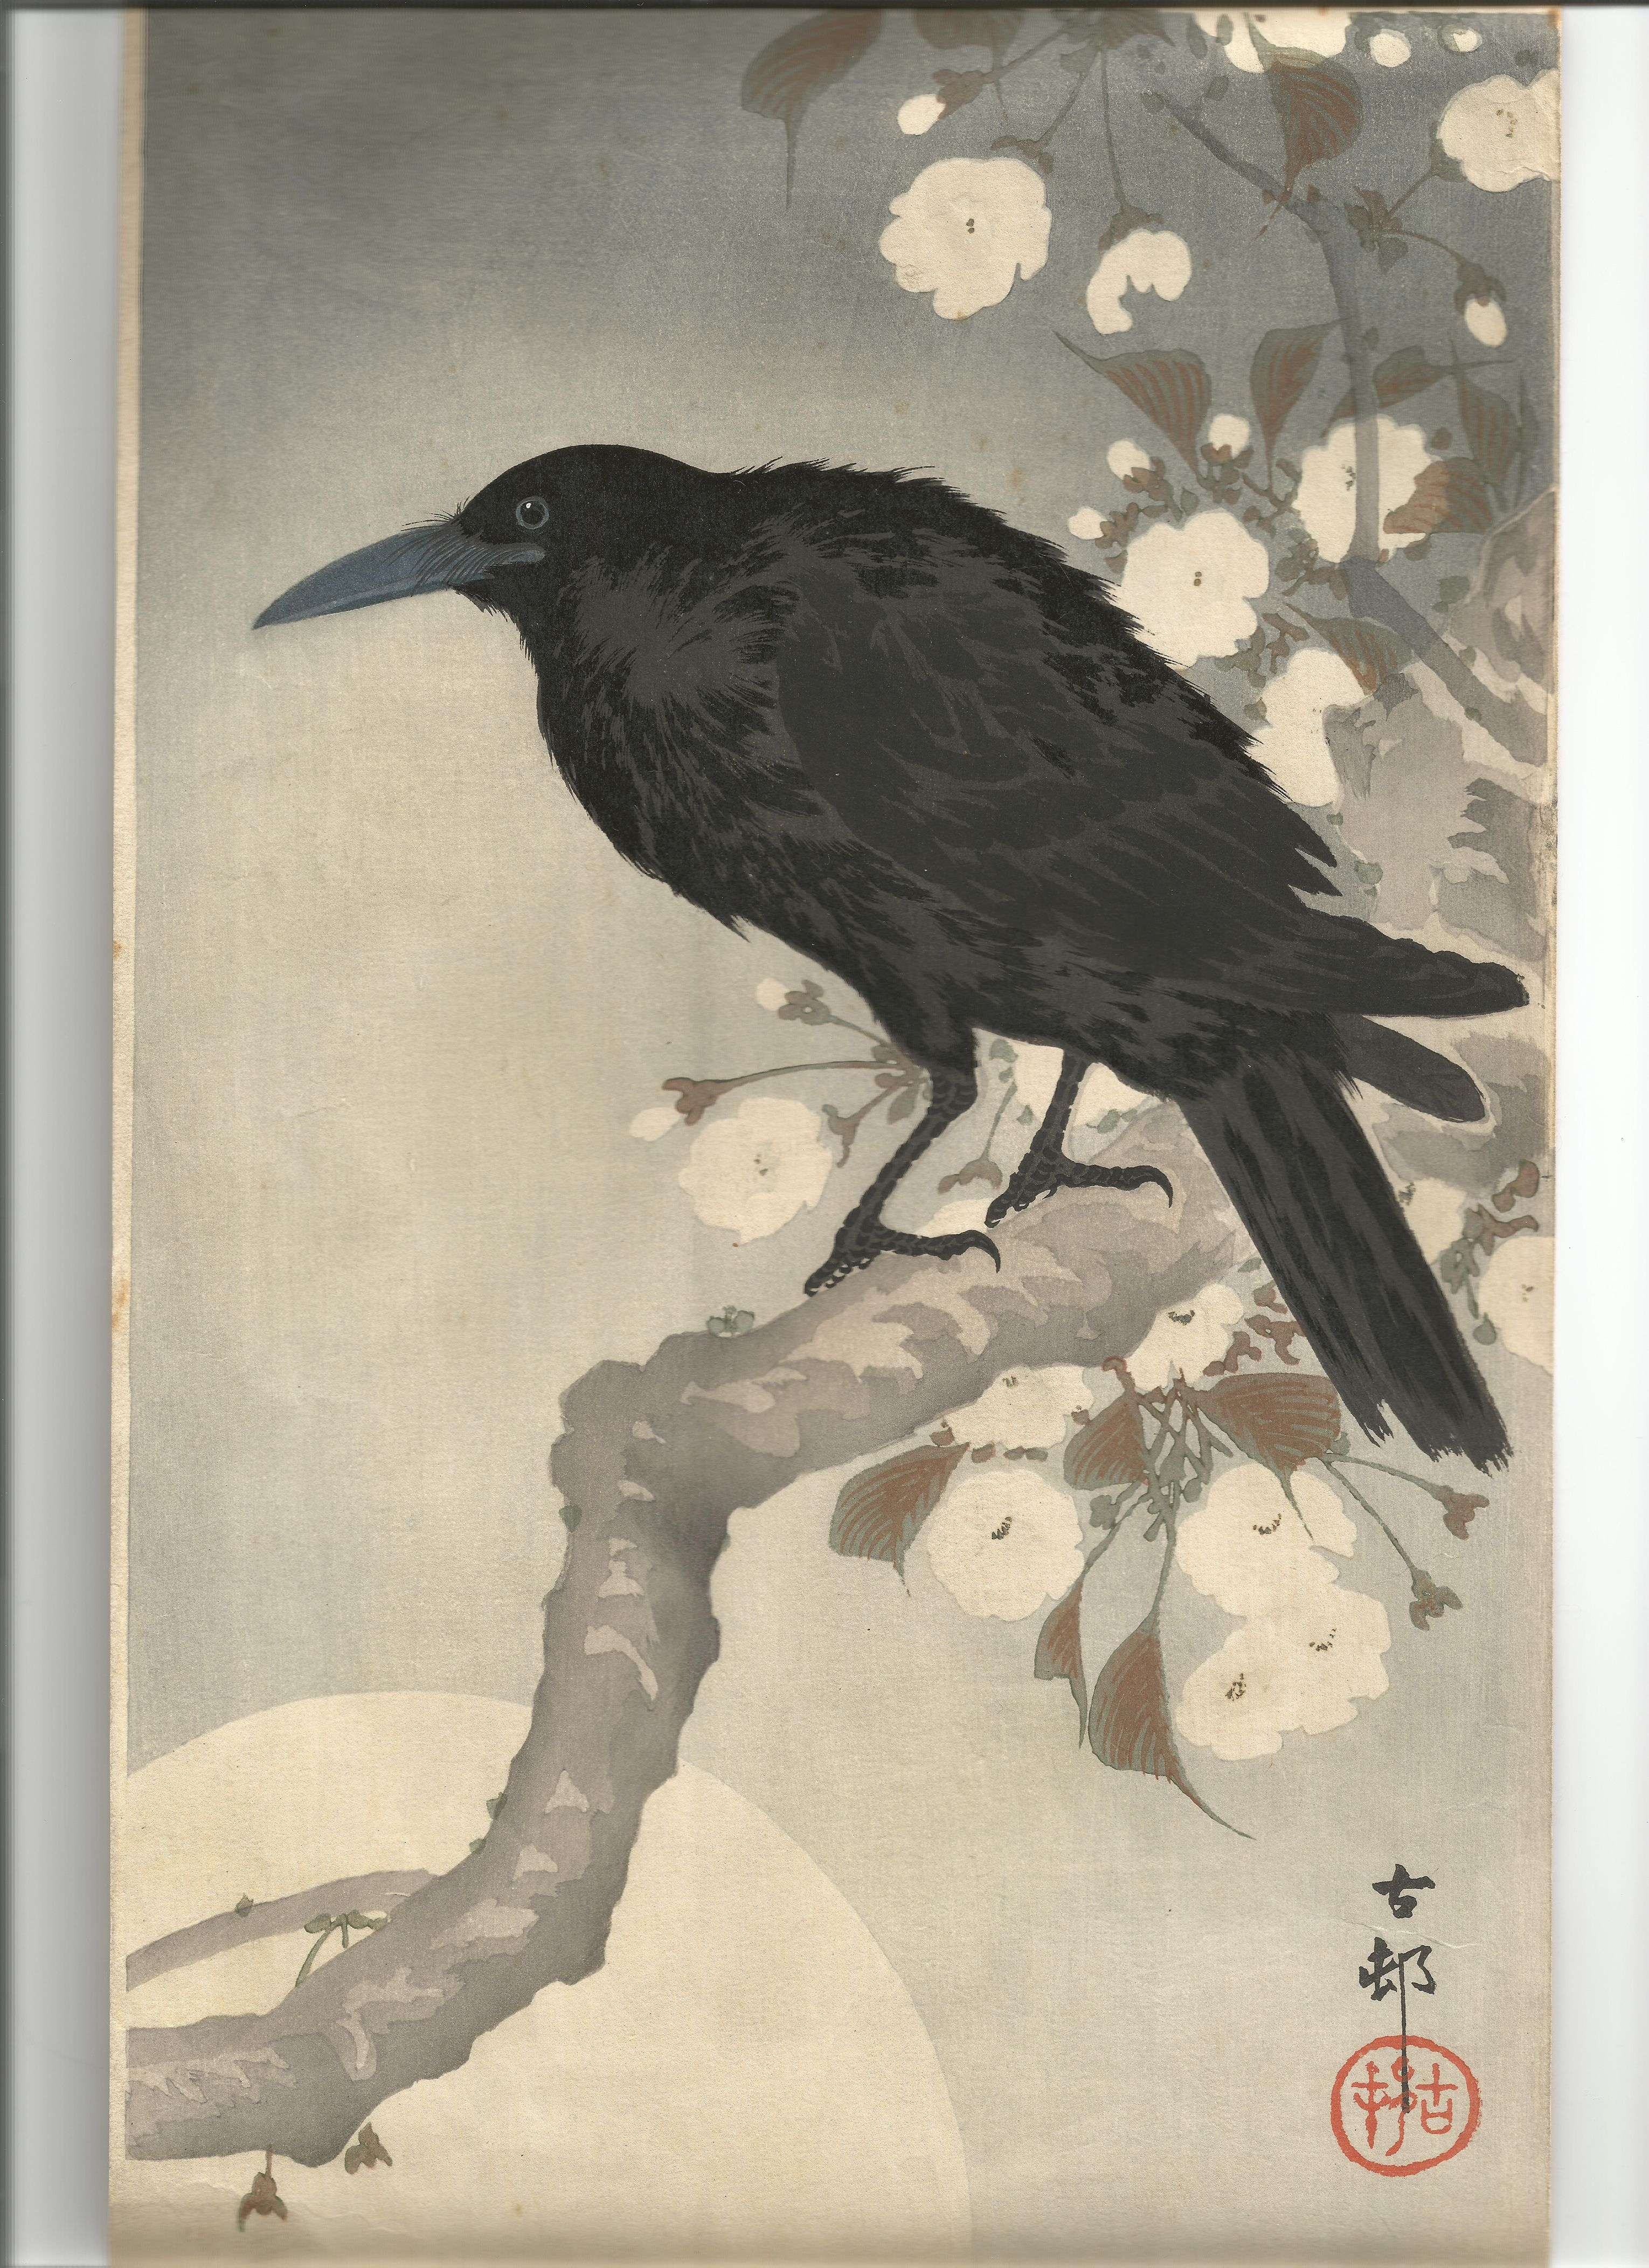 Japanese Reproduction Woodblock Print 6 by Ohara Koson on Cream Parchment Paper.